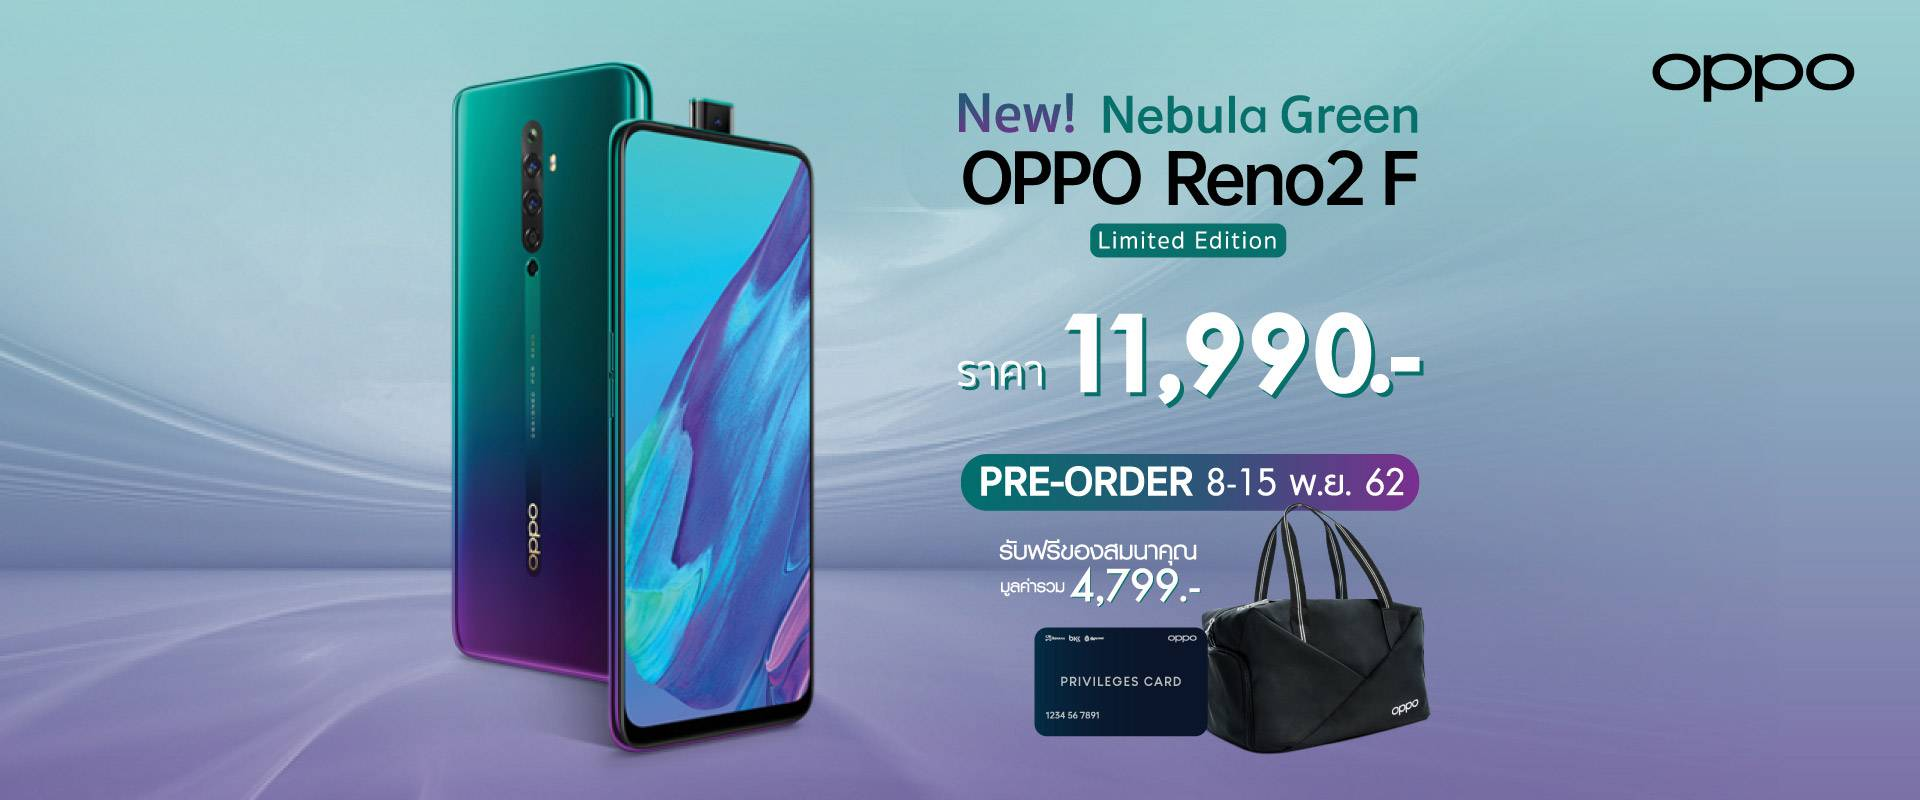 Nebula GreenOPPO Reno 2FLimited Edition